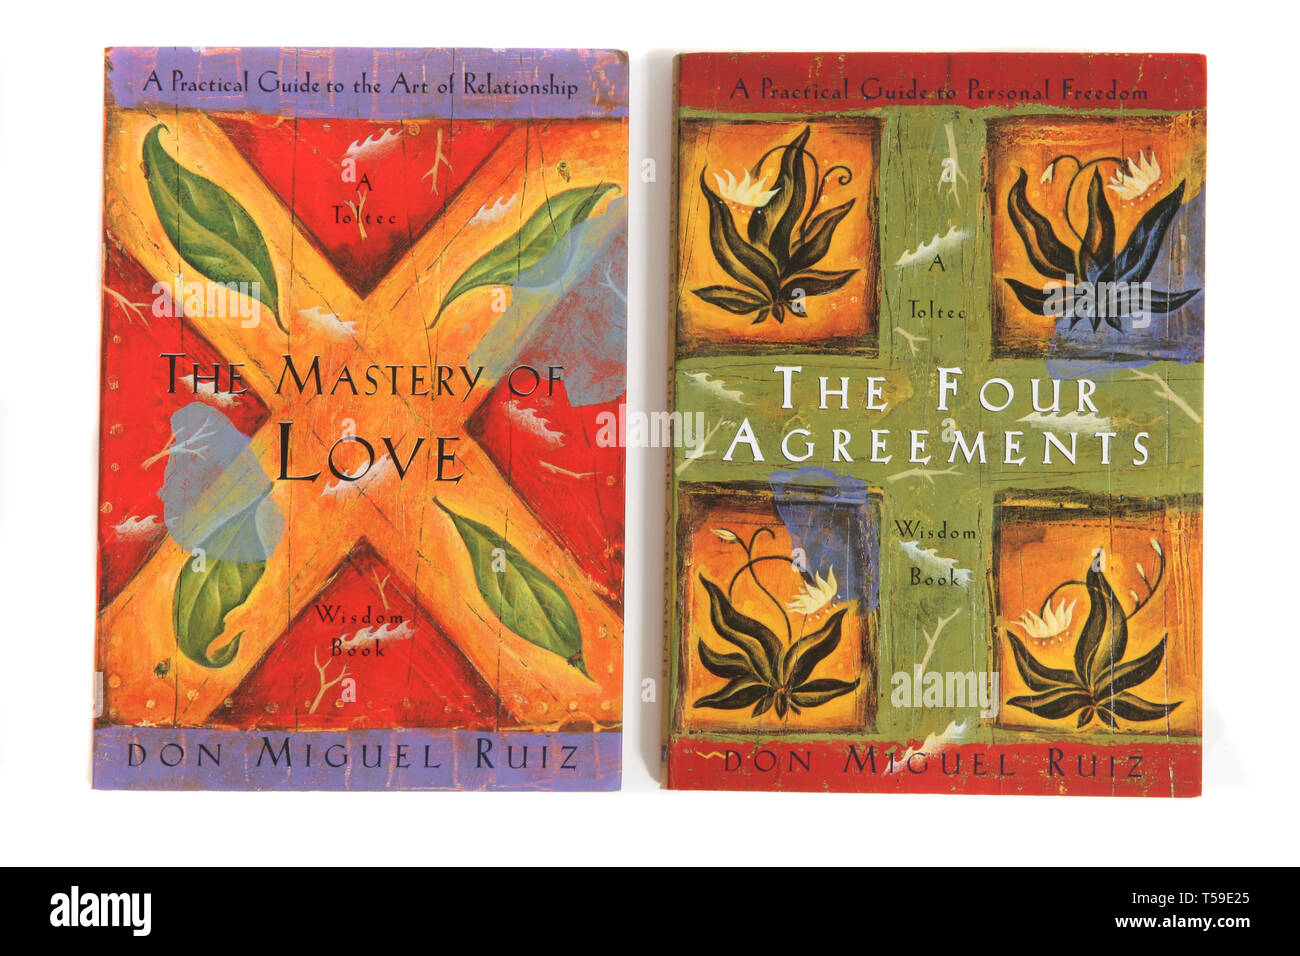 2 books by Don Miguel Ruiz, The Mastery of Love and The Four Agreements - Stock Image